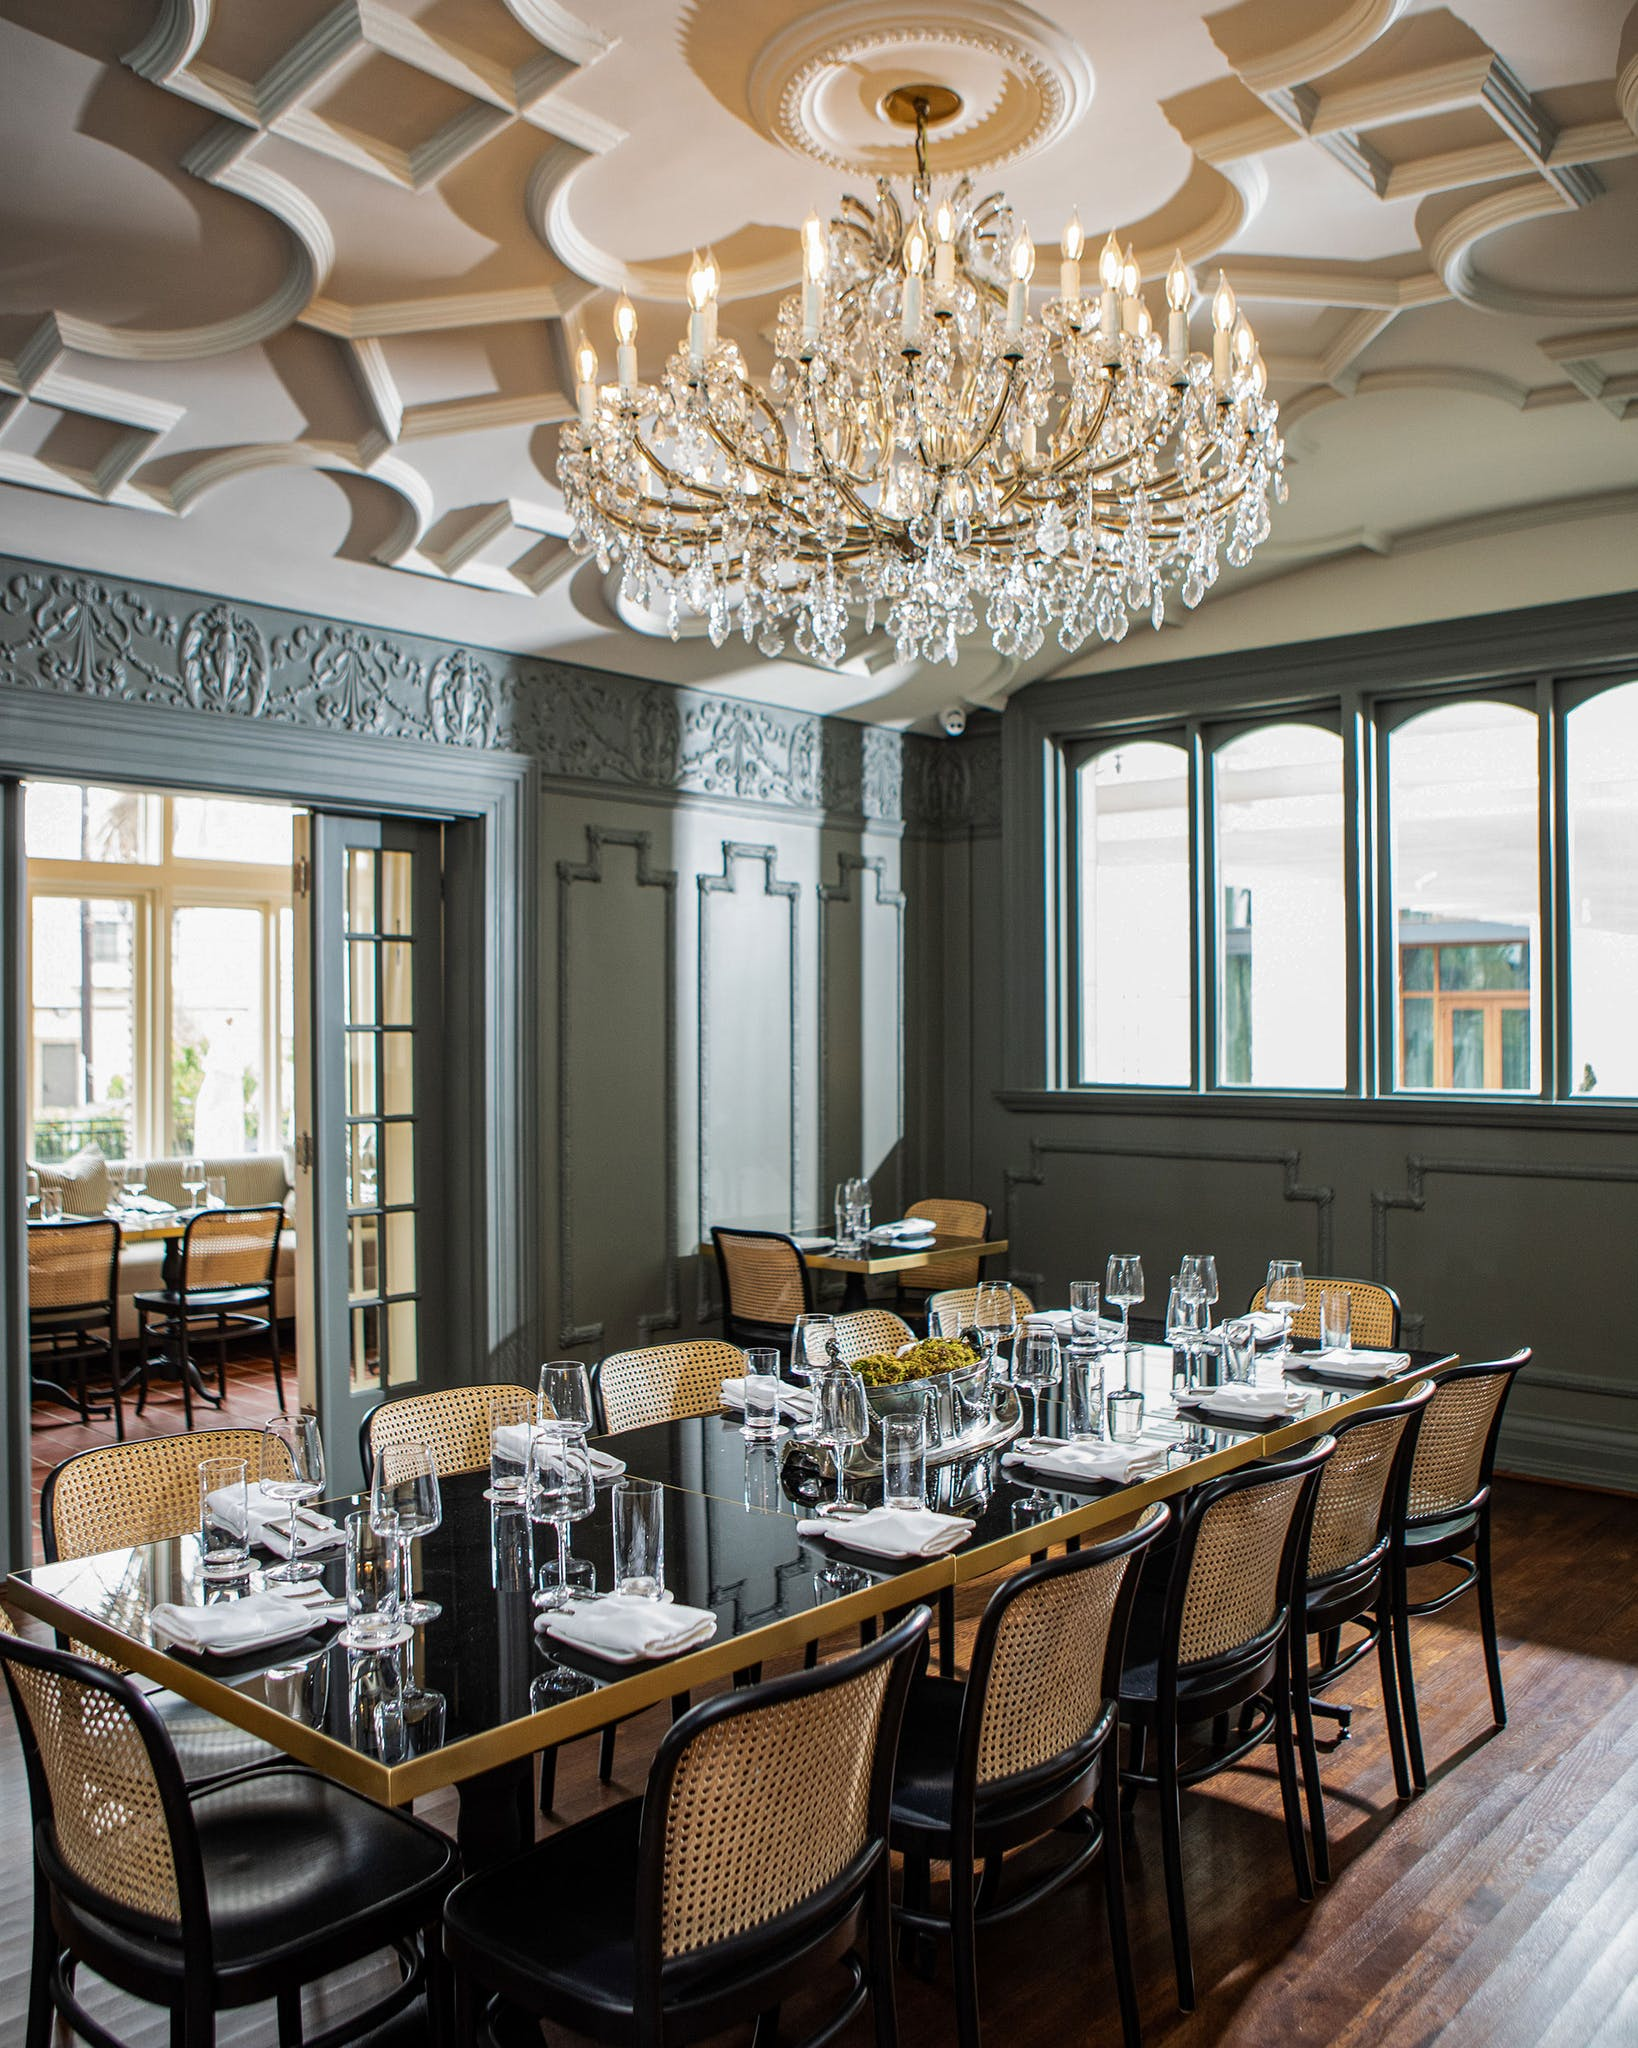 Thanks to the original architecture, some rooms can be easily closed off for private events.